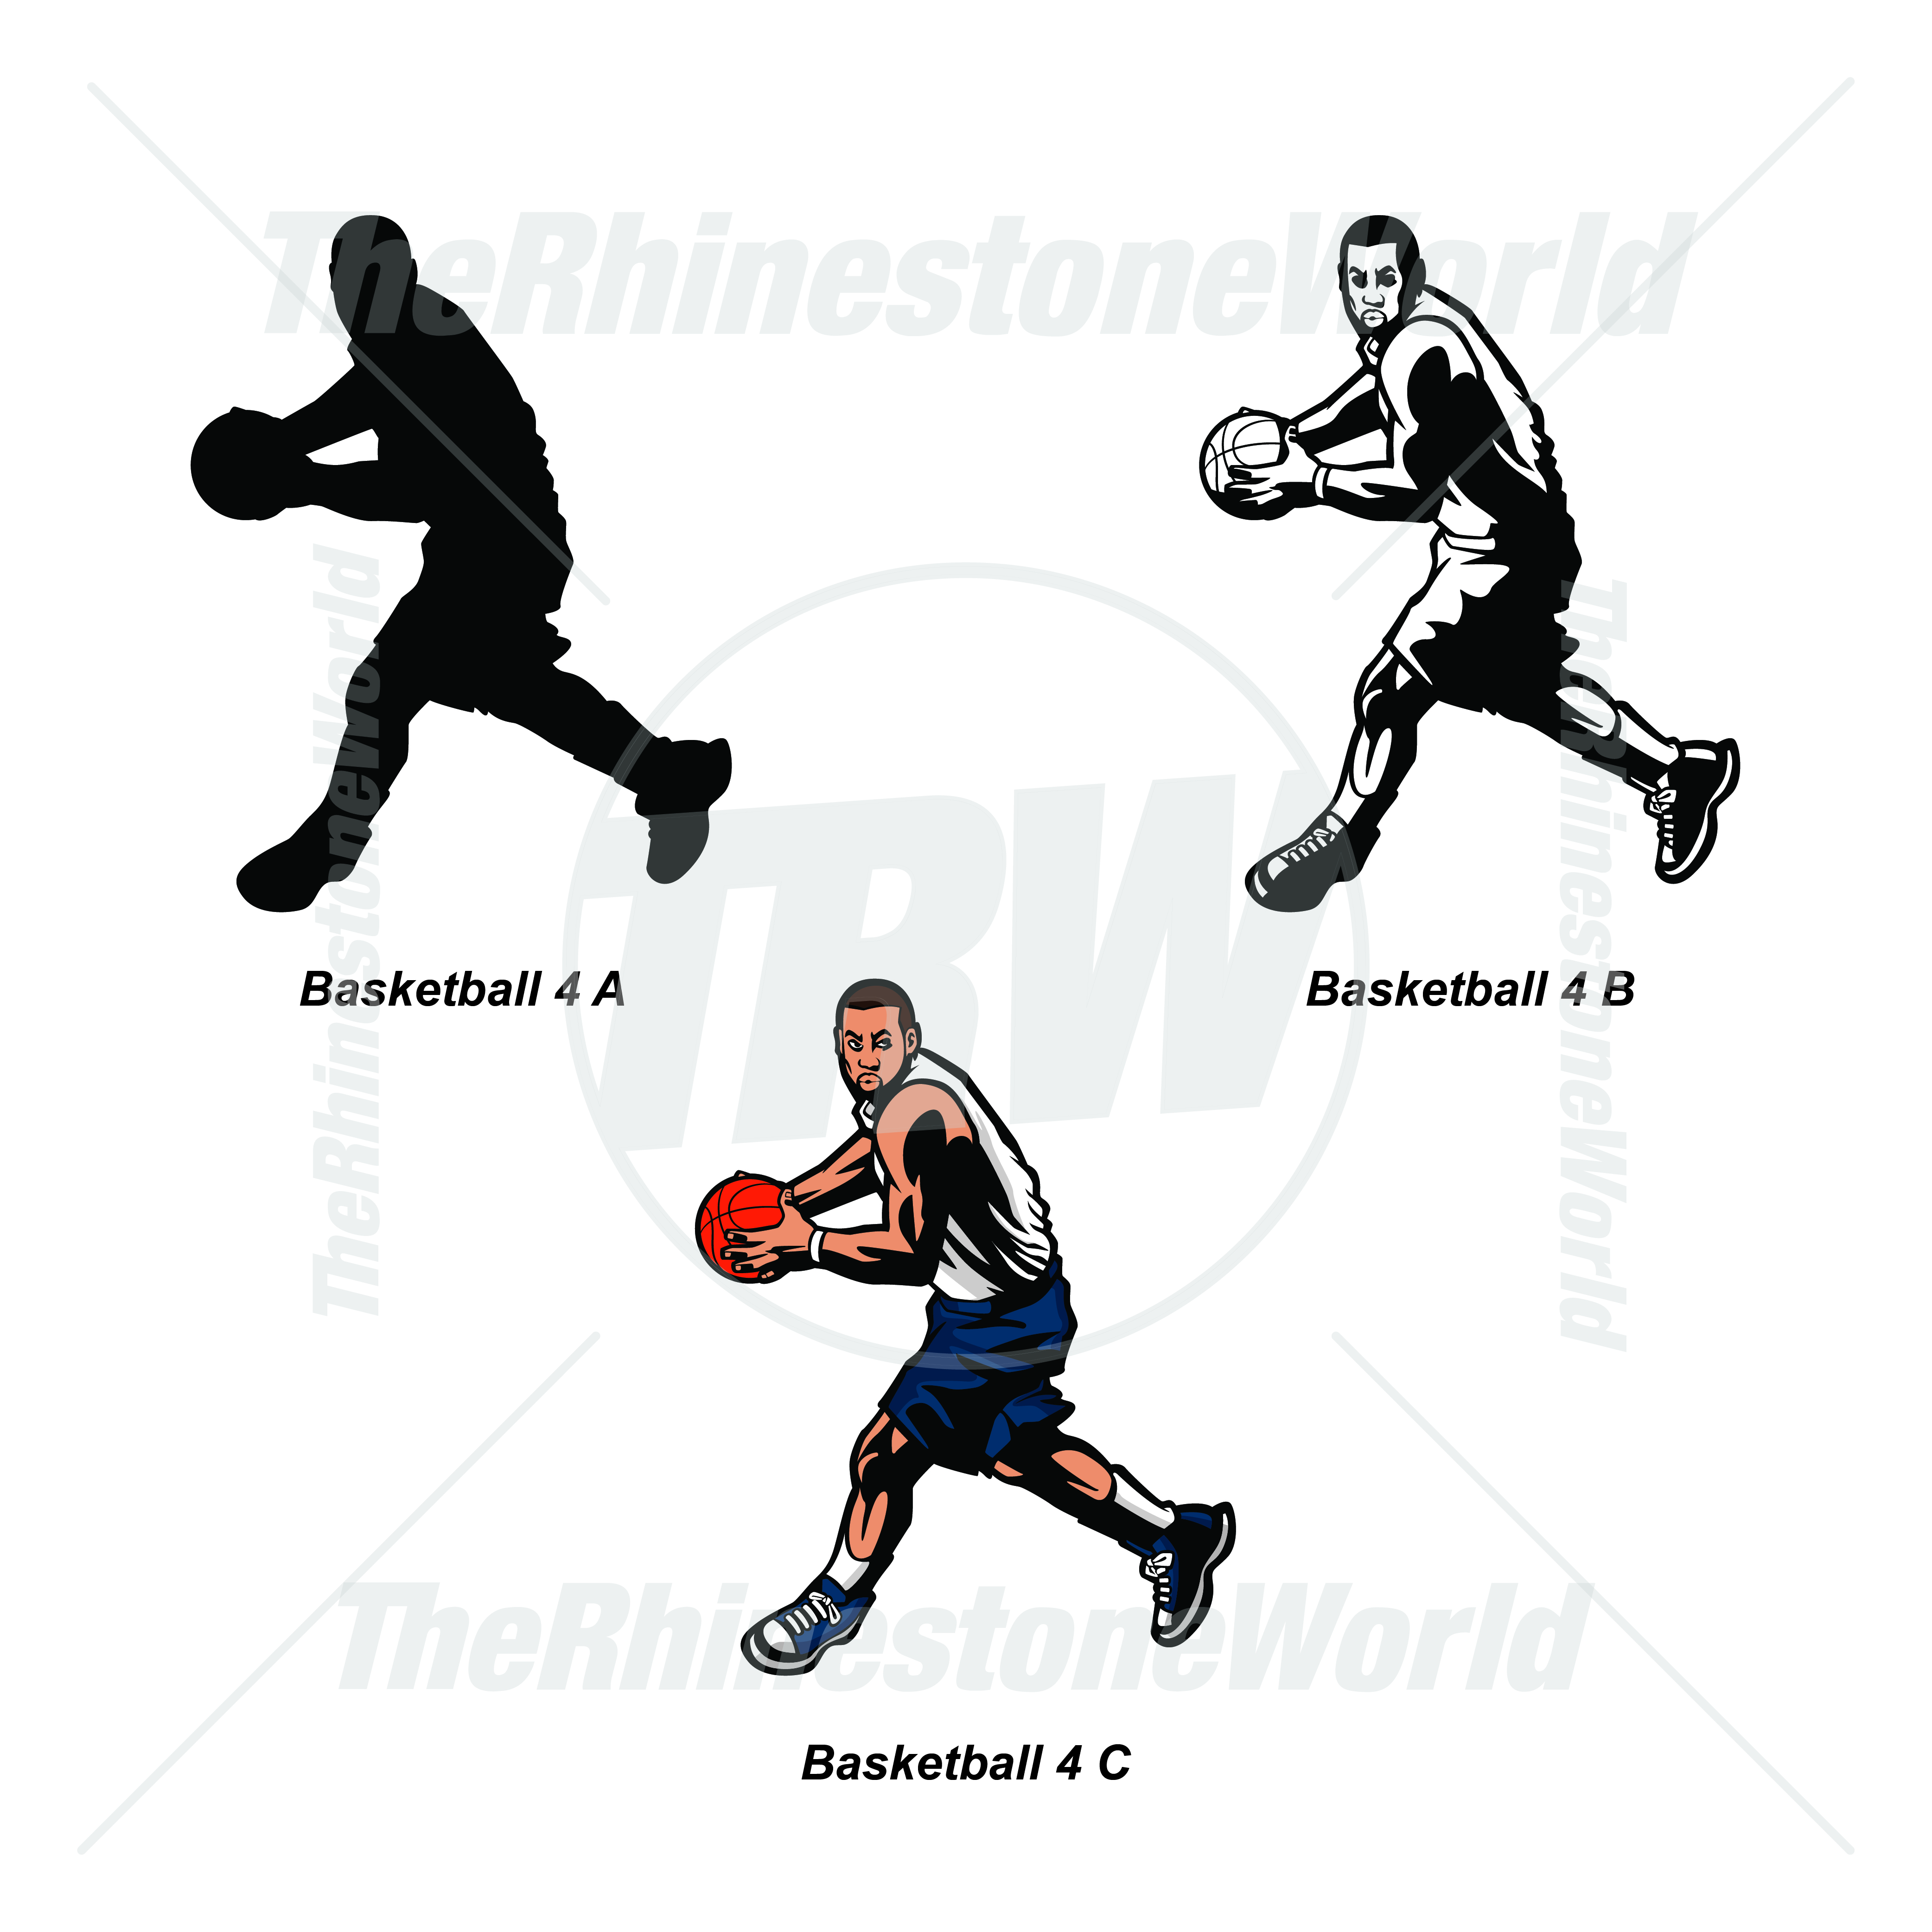 Sports Player Pack Basketball 4 - Download